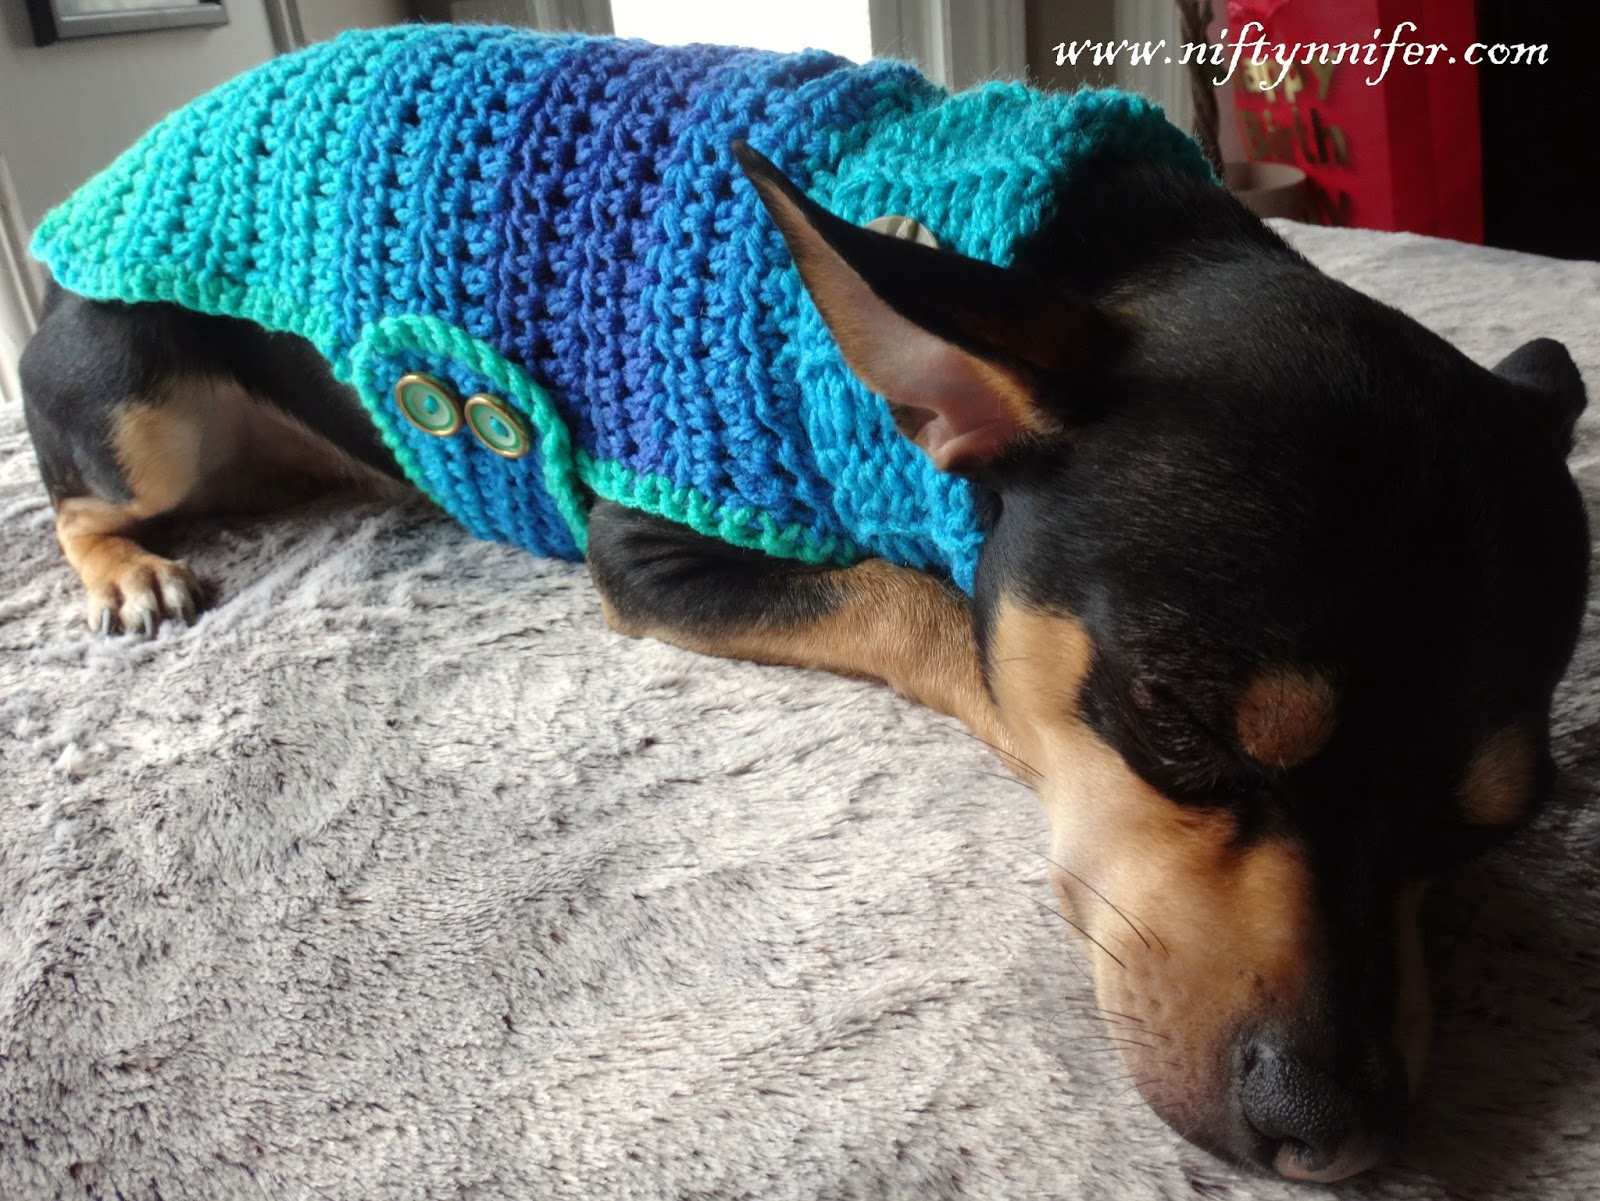 Niftynnifers Crochet Crafts Free Crochet Pattern Chihuahua Sweater